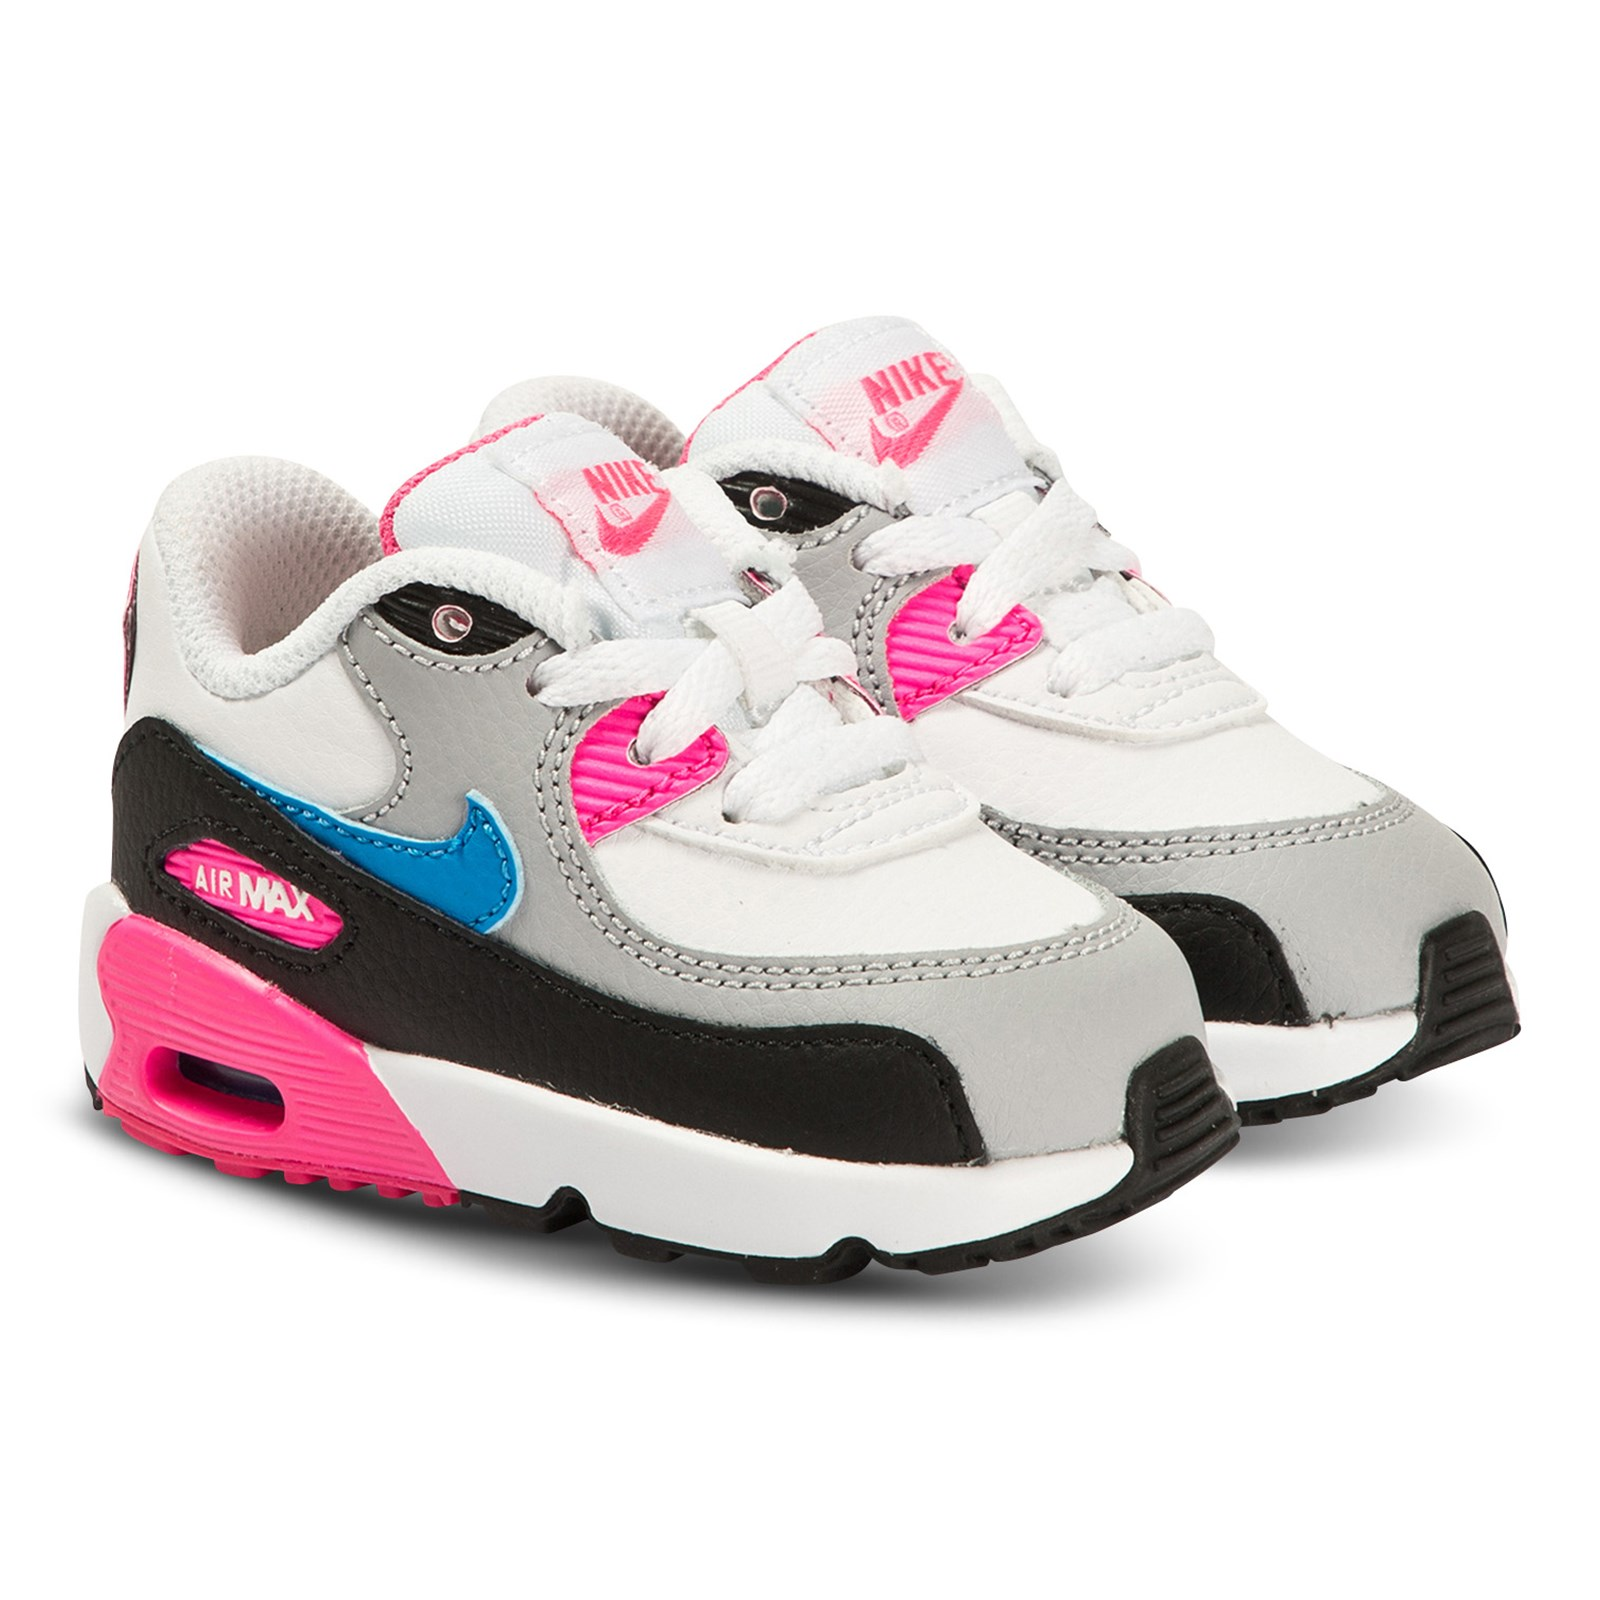 NIKE - Air Max 90 Infants Sneakers White and Photo Blue - Babyshop.com